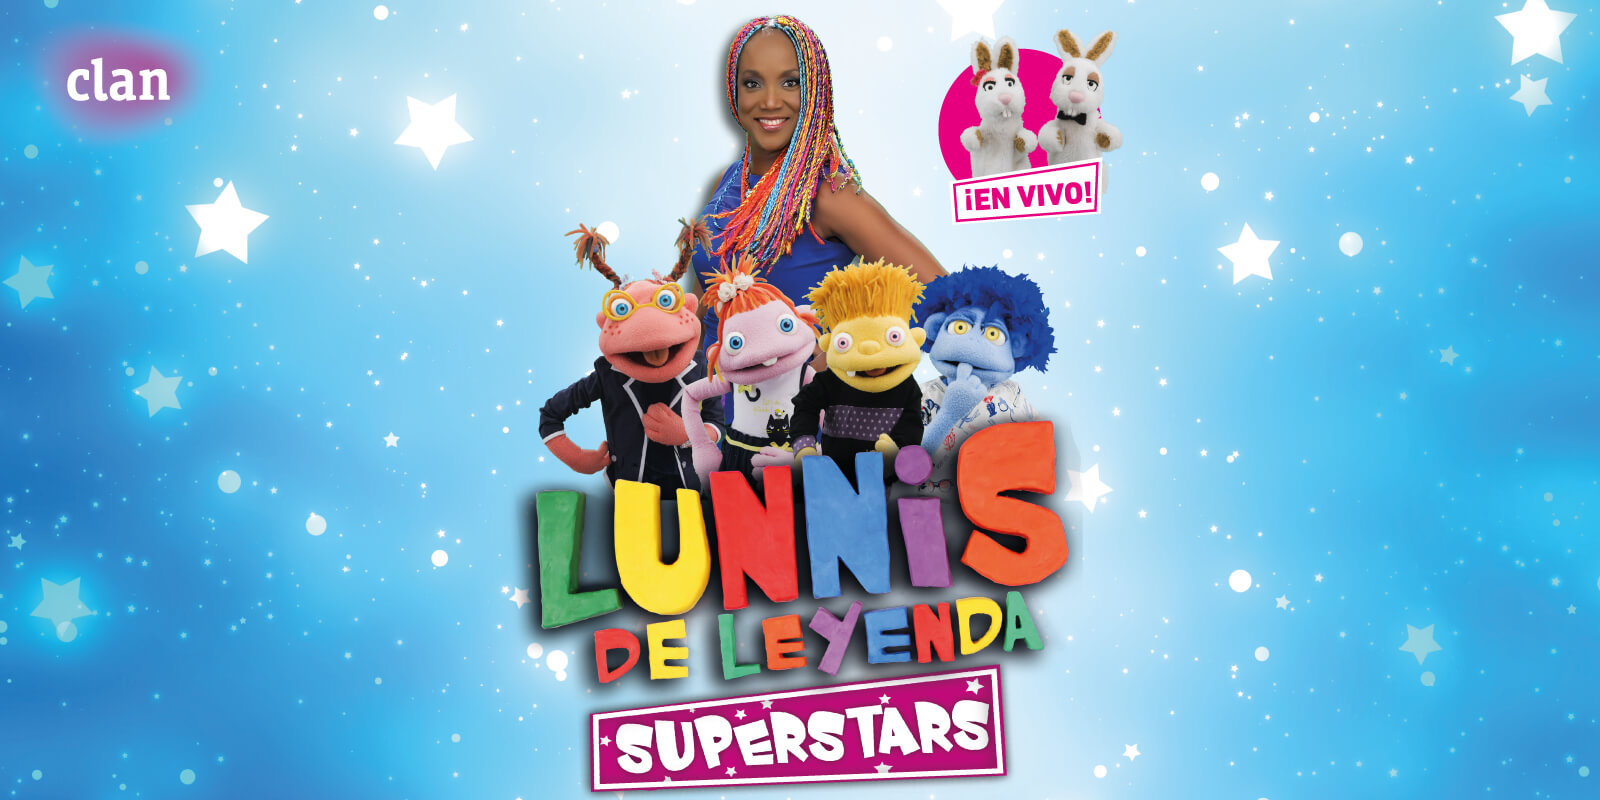 lunnis de leyenda superstars en vivo